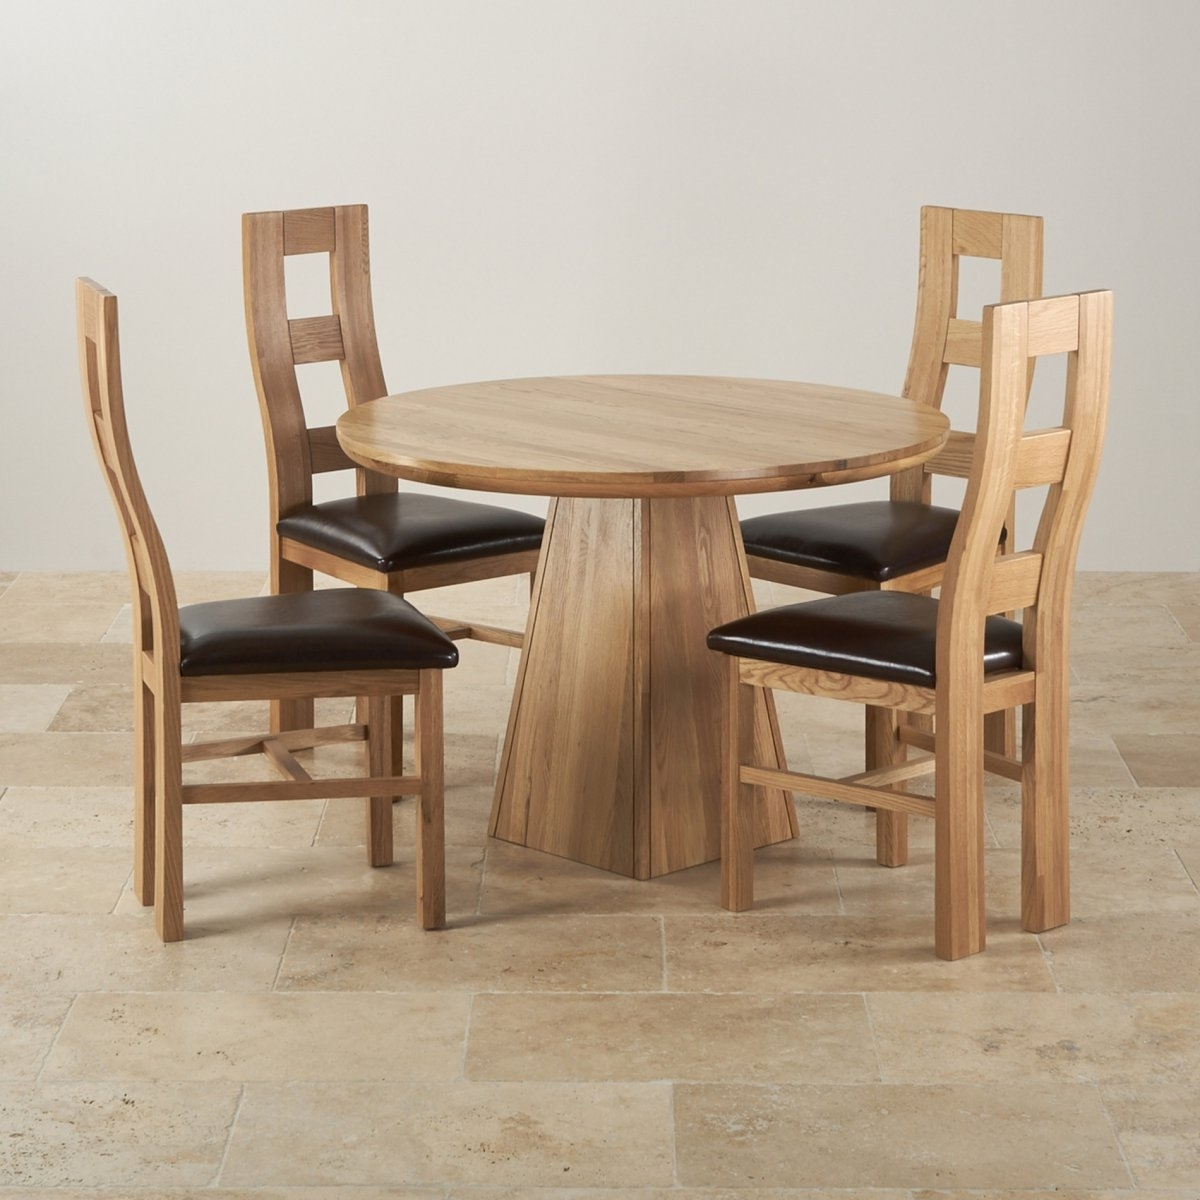 3Ft Dining Tables Throughout Well Known Provence Solid Oak Dining Set 3Ft 7Quot Table With 4 Chairs Luxury (View 4 of 25)